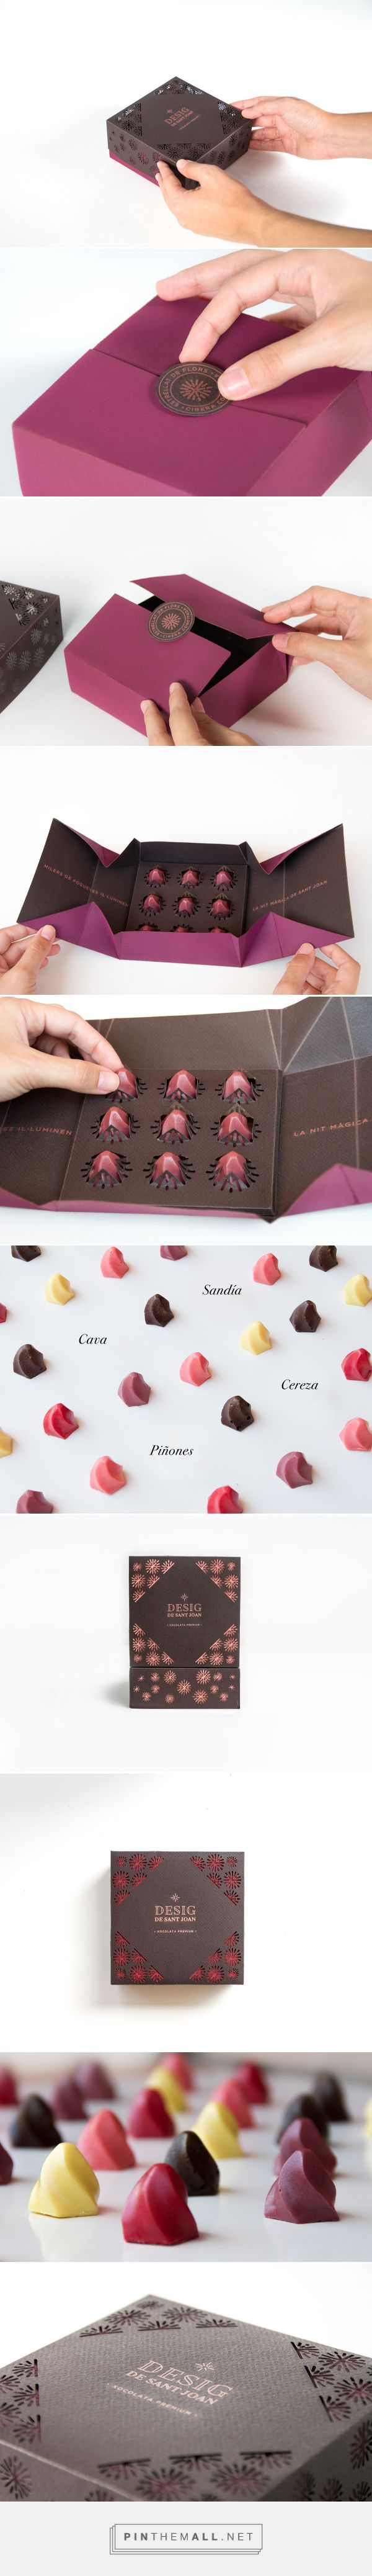 Branding and packaging for Desig de Sant Joan on Behance curated by Packaging Diva PD. Wow, look at this die-cut candy packaging. design. Yummy.